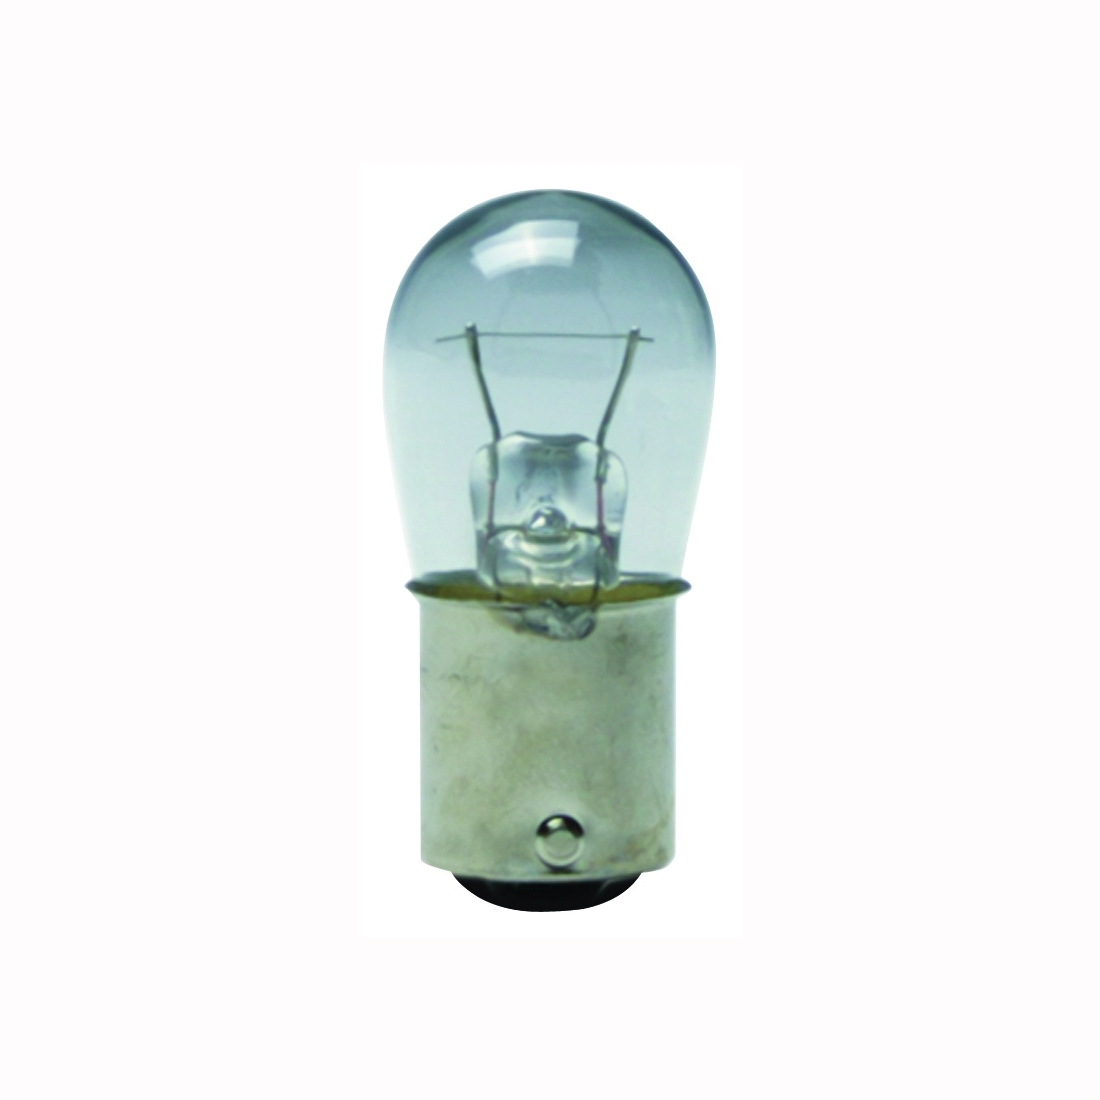 Picture of EIKO 1004-2BP Lamp, 12.8 V, B6 Lamp, Double Contact Base